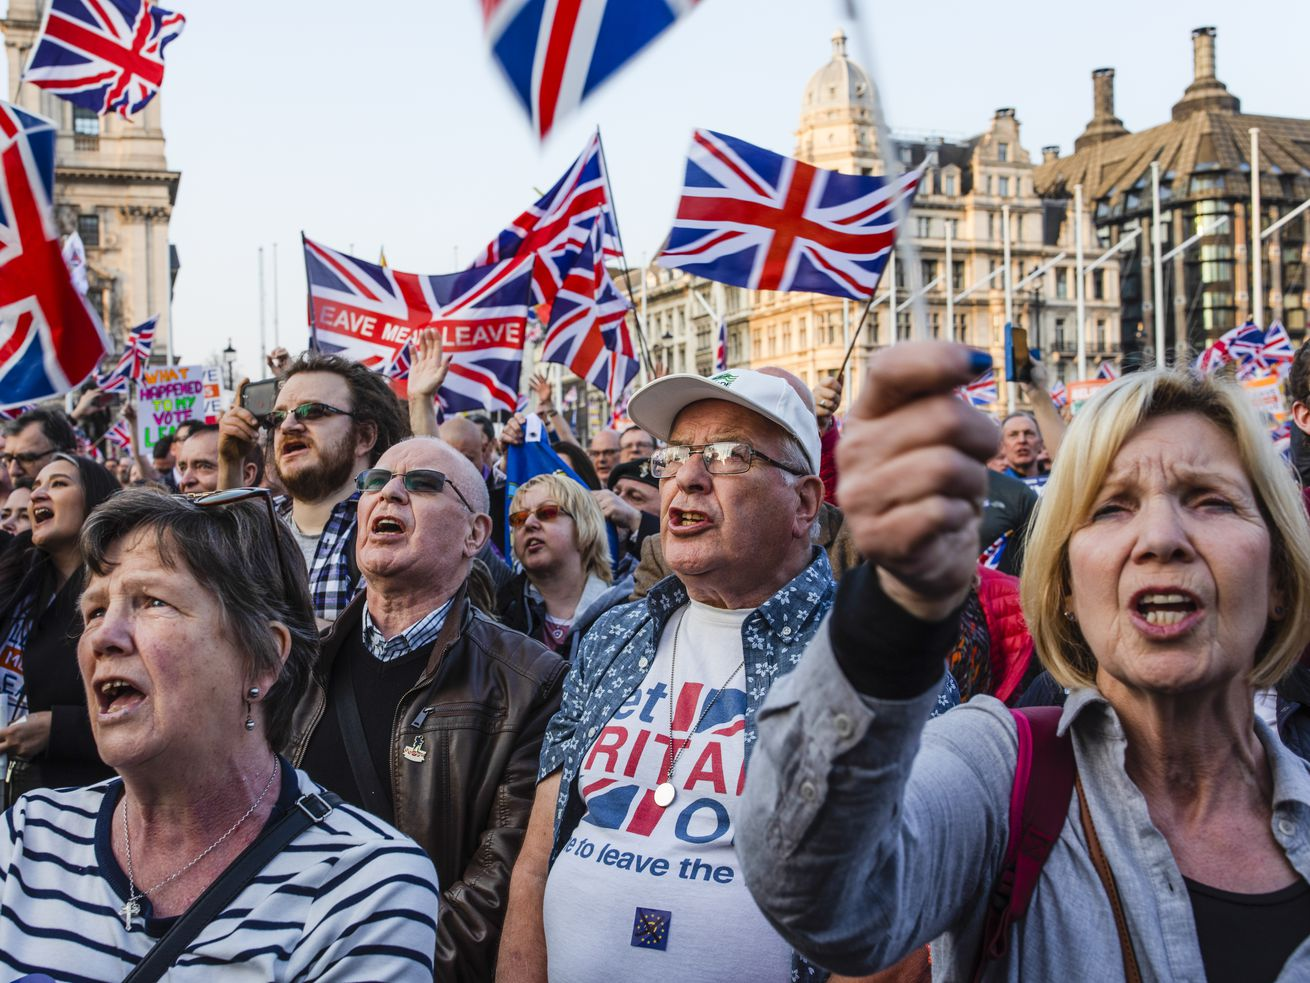 Pro-Brexit demonstrators gather in Parliament Square to listen to Nigel Farage speak in London on March 29, 2019.